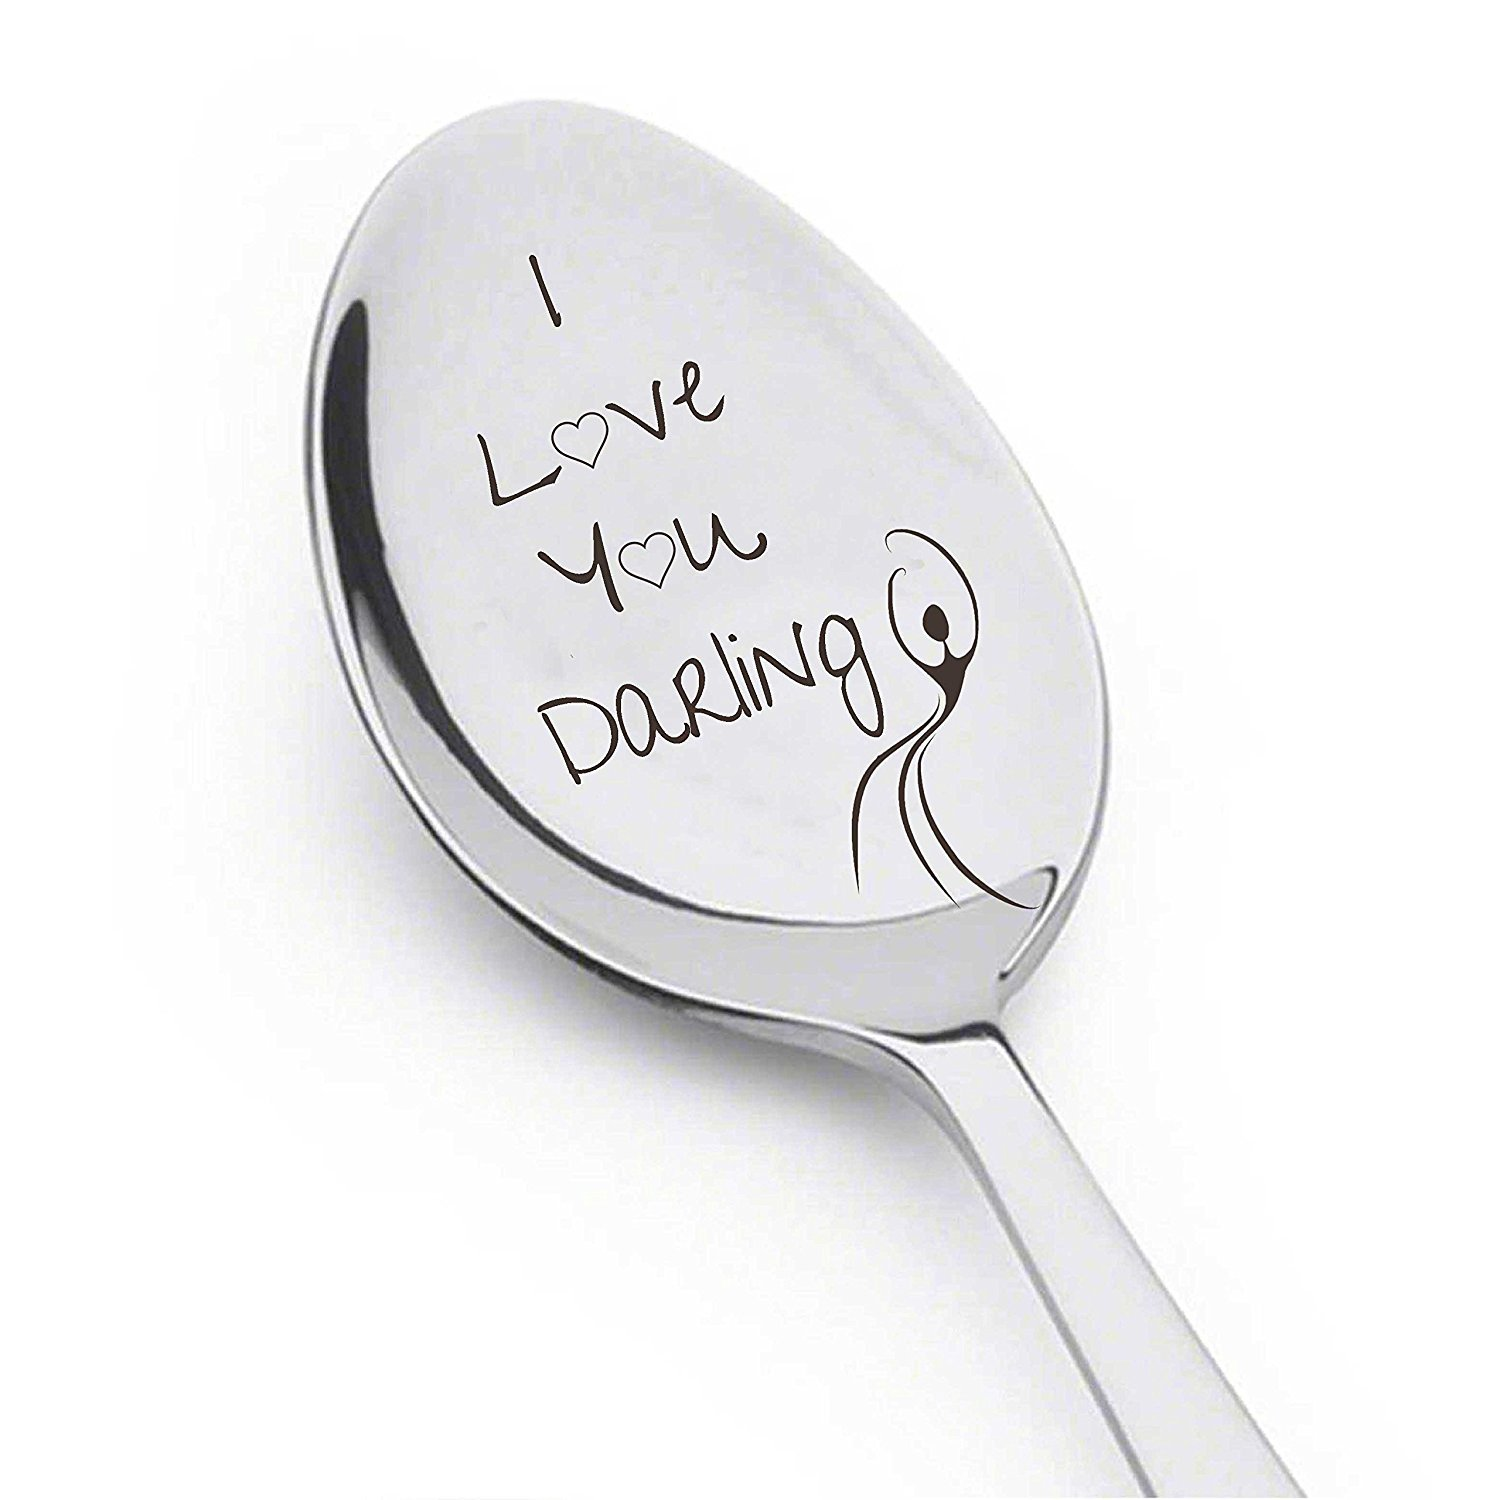 I Love You Darling With dancing Girl - Cute Gift - Engraved Spoon - Silverware Spoon Anniversary Gift - Wedding Gift - Girlfriend - Wife